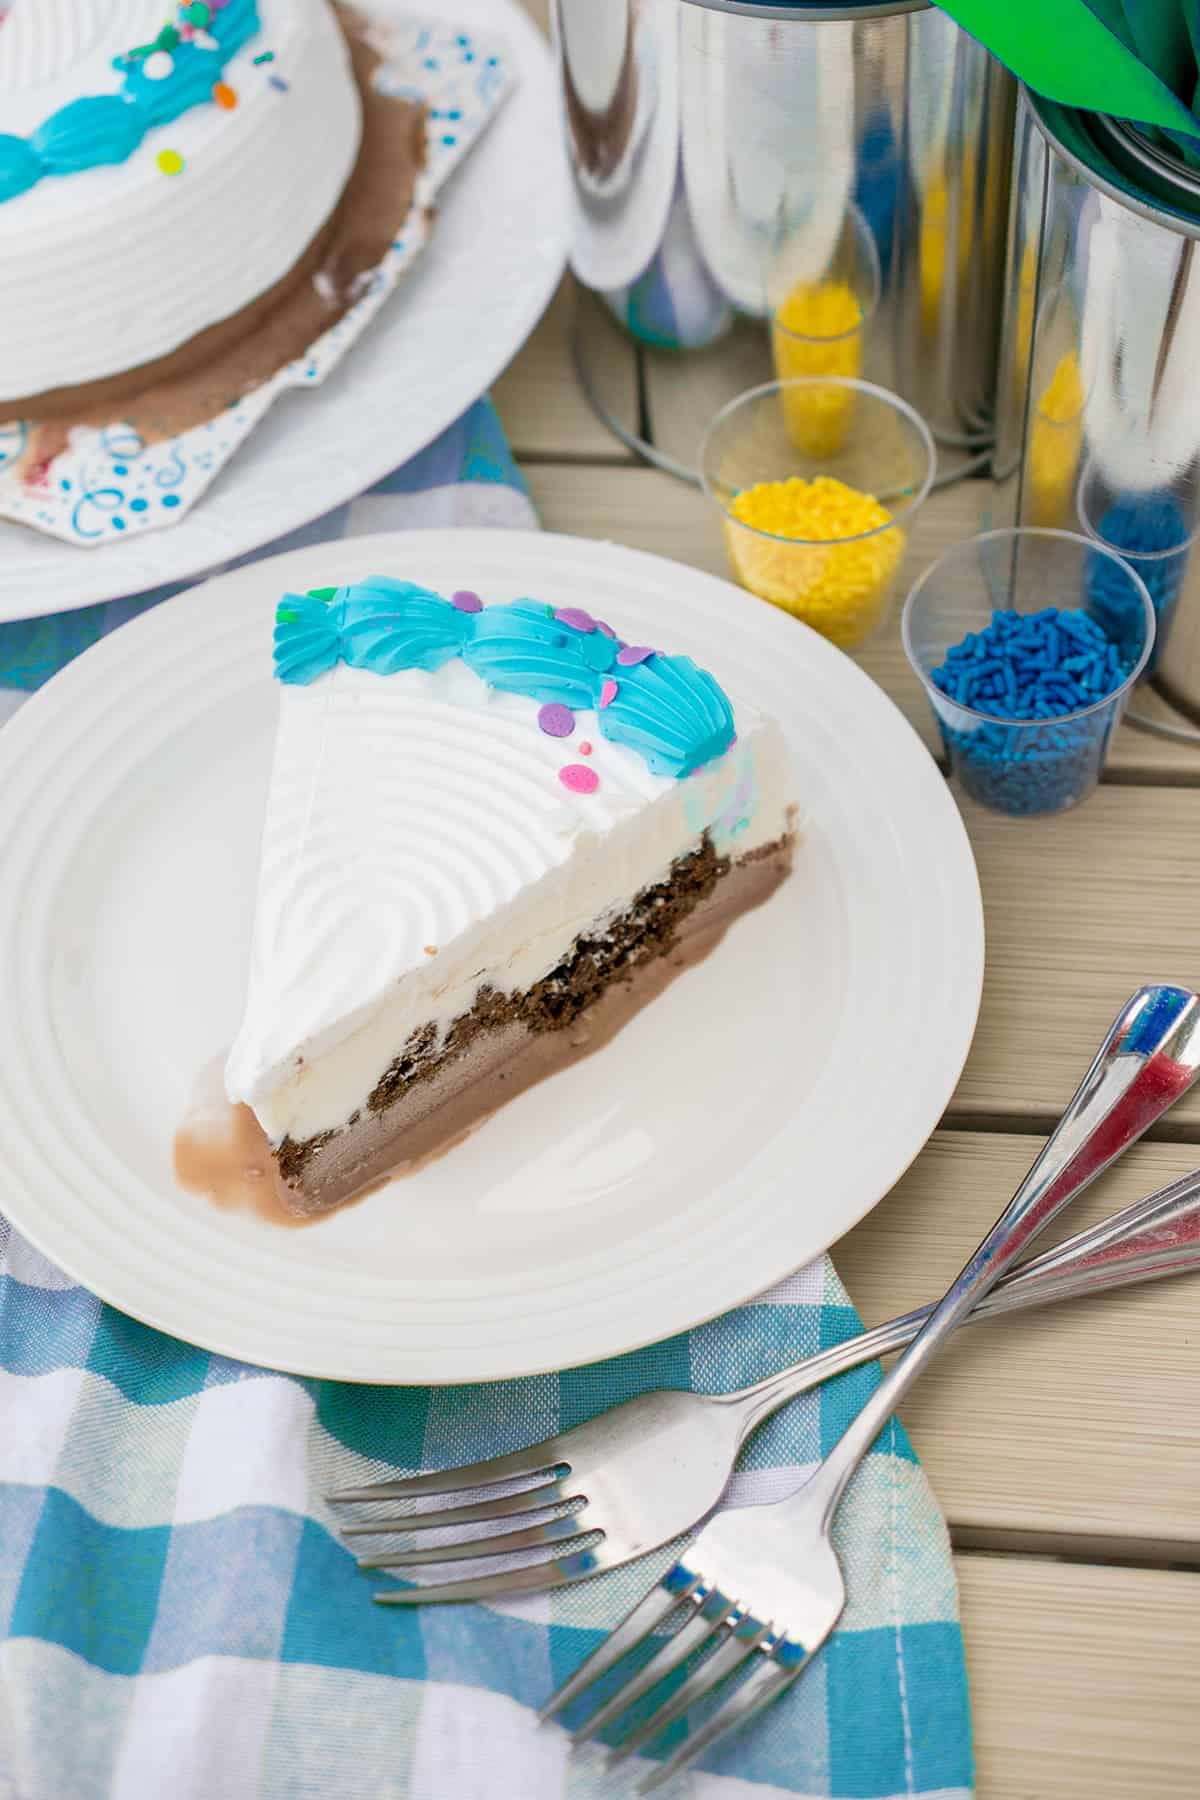 Ice cream cake on white plate with colorful sprinkles for individualized cake decorating